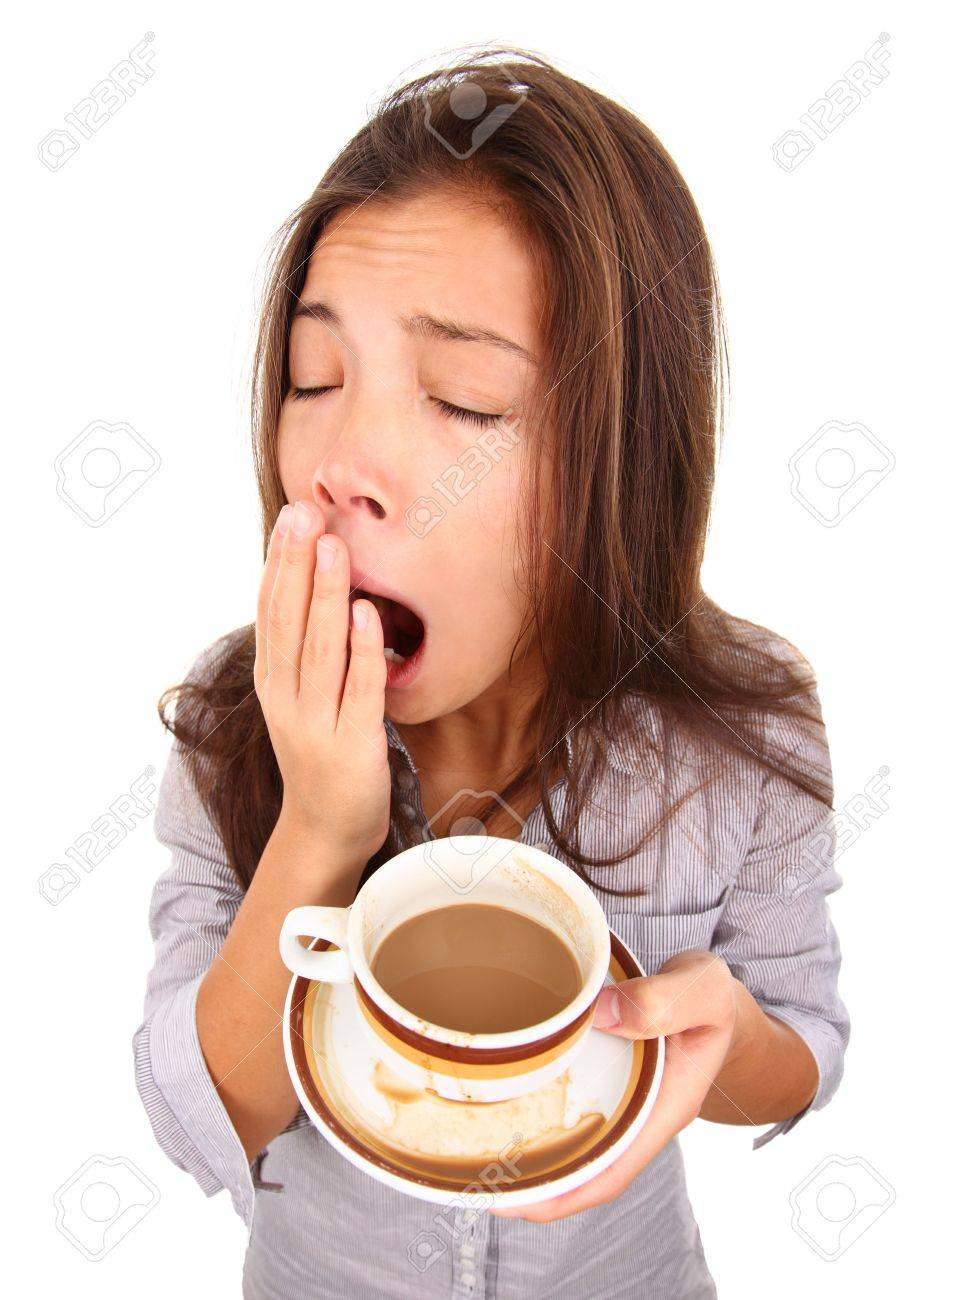 Tired woman yawning spilled a little coffe. Beautiful mixed race asian / caucasian model isolated on white background. Stock Photo - 6035269